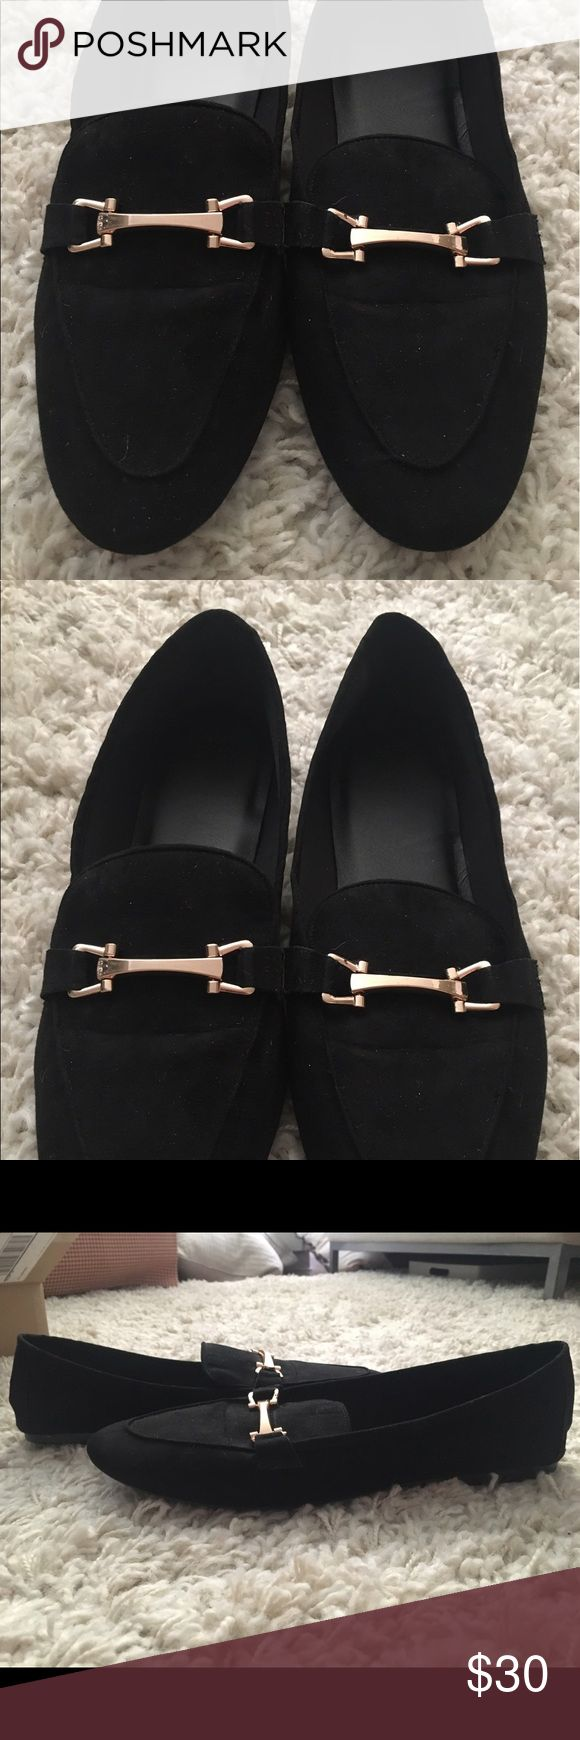 Black faux suede loafers from ASOS. Black faux suede loafers from ASOS. Gold hardware. Tried on for size, never been worn. ASOS Shoes Flats & Loafers